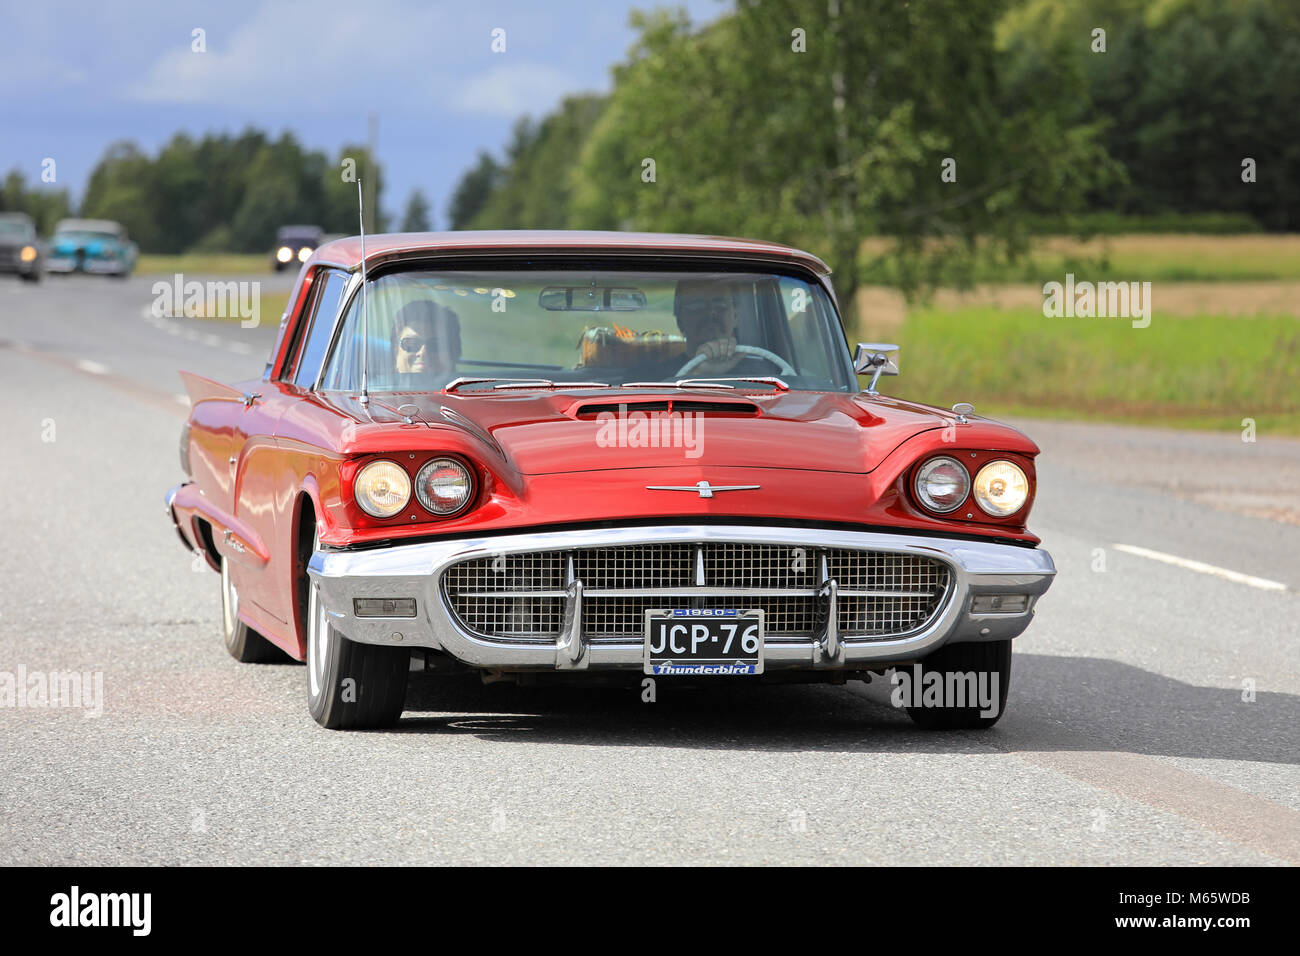 SOMERO, FINLAND - AUGUST 5, 2017: Red Thunderbird hardtop 1960 classic car moves along rural highway on Maisemaruise Stock Photo